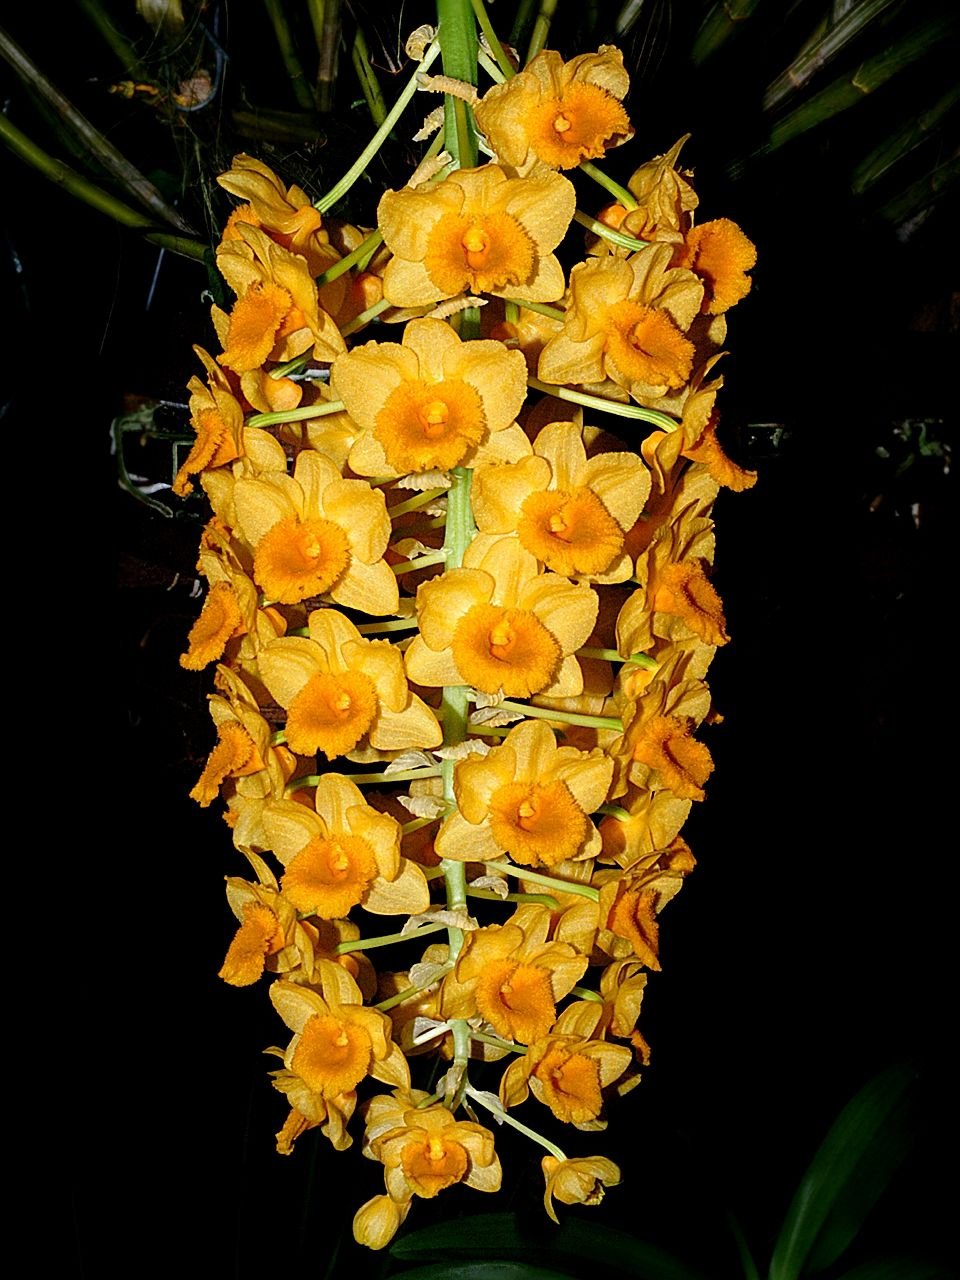 http://upload.wikimedia.org/wikipedia/commons/2/2a/Dendrobium_densiflorum_Orchi_104.jpg